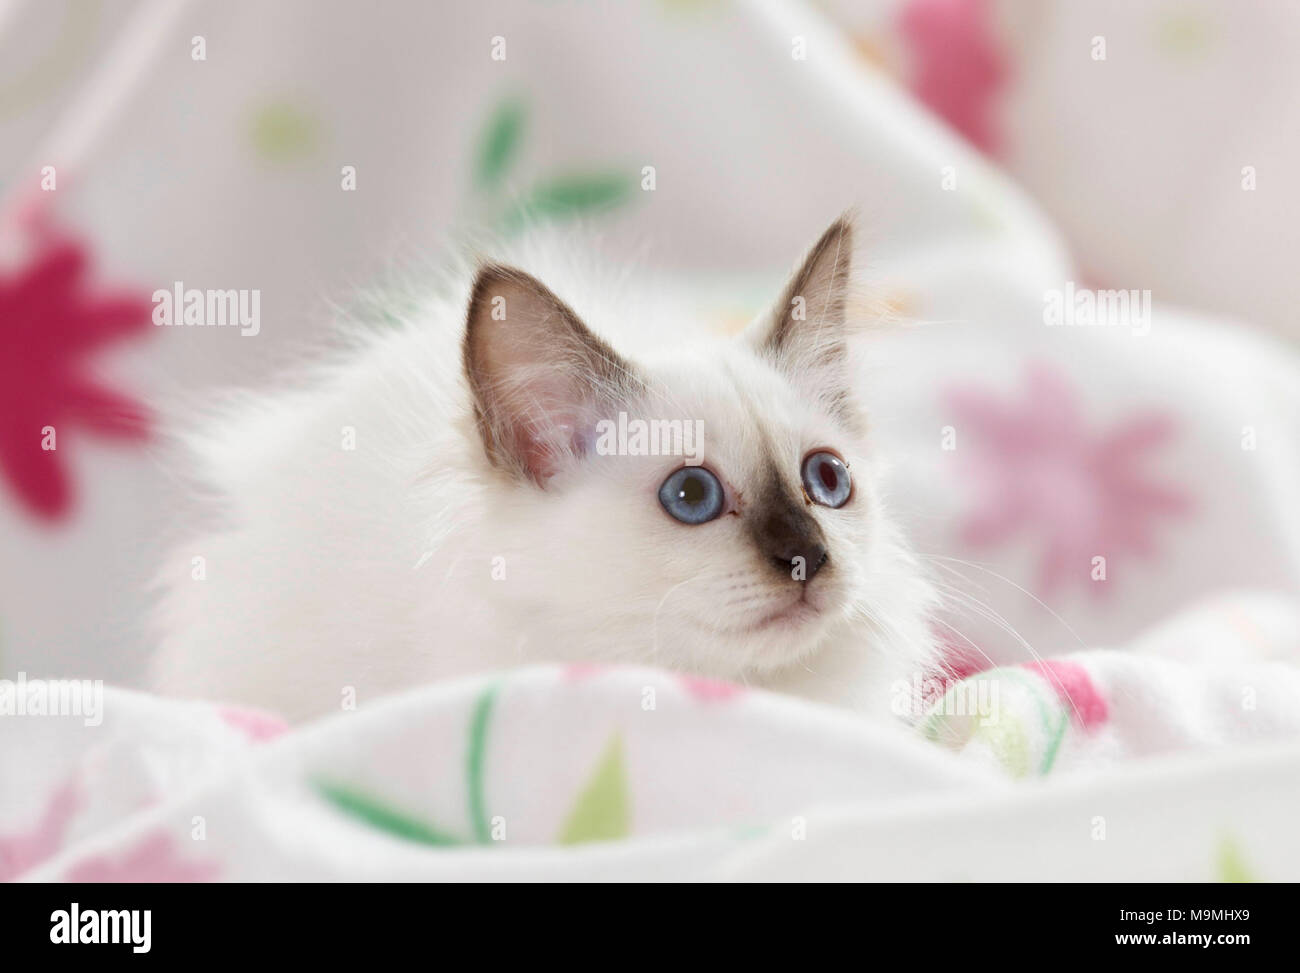 Sacred cat of Burma. Kitten lying on a white blanket with flower print. Germany - Stock Image